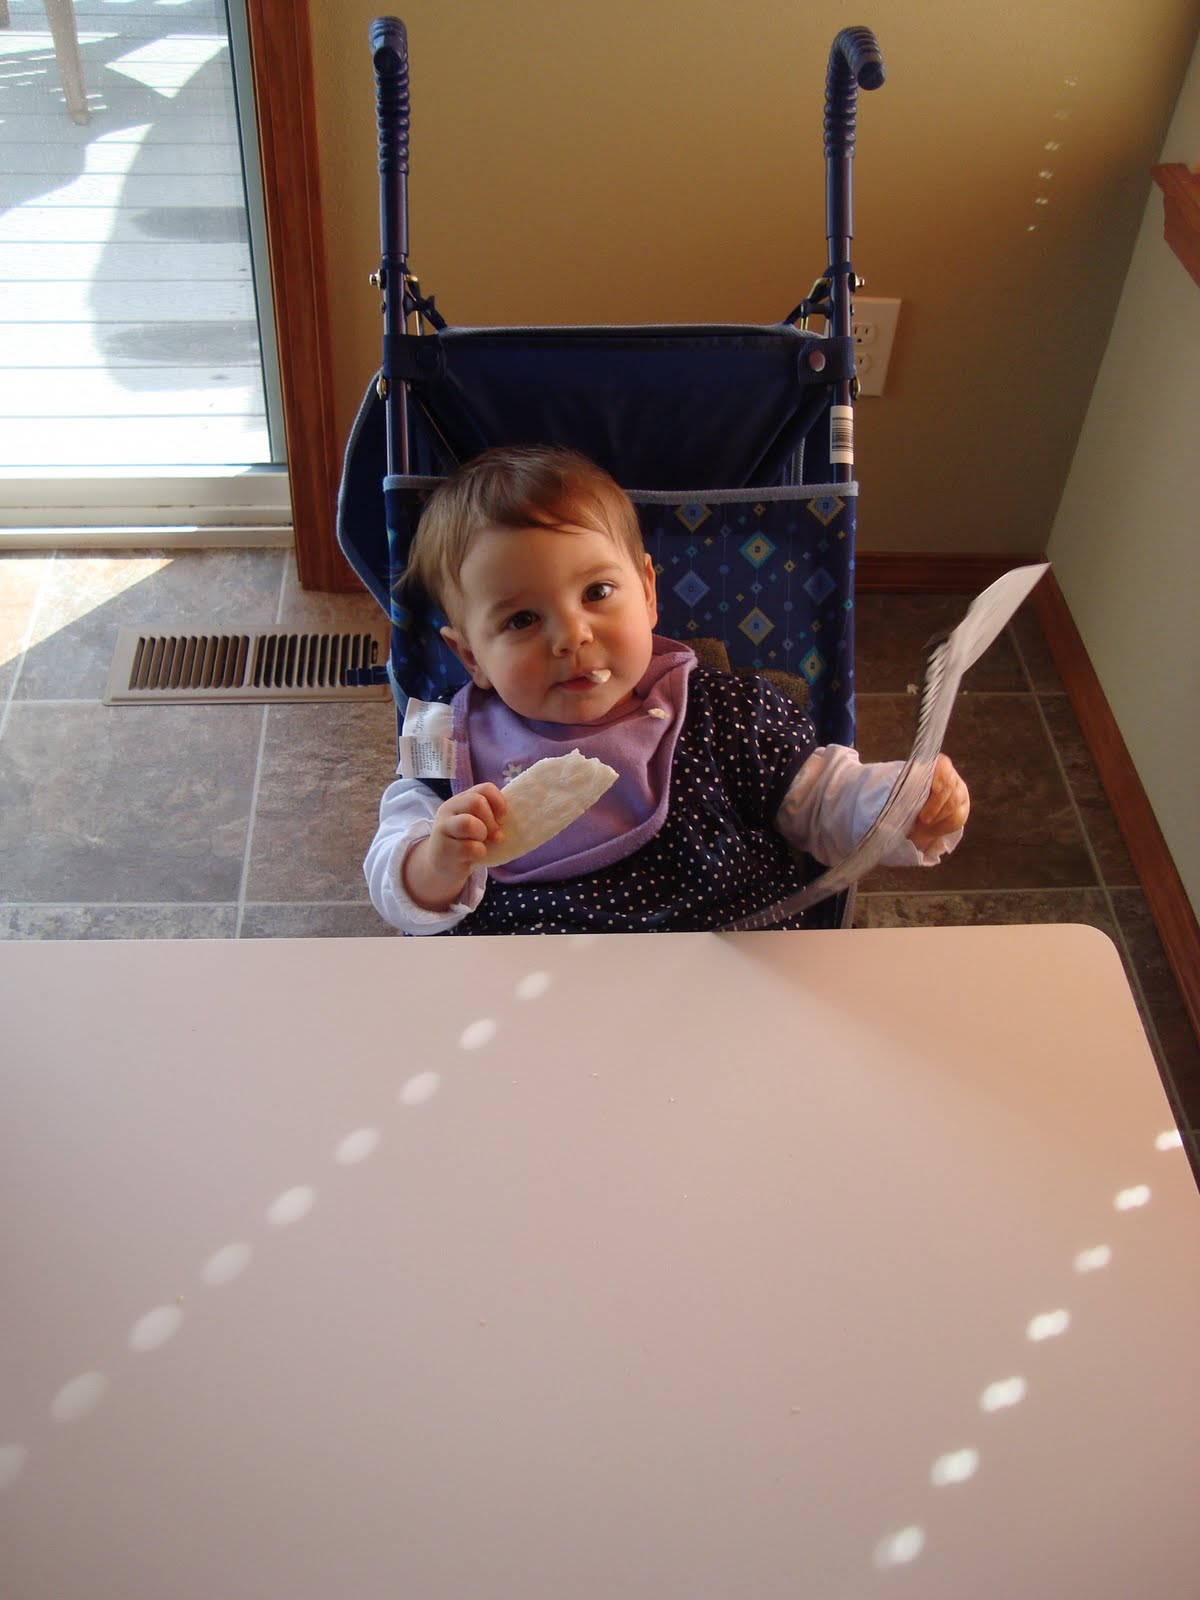 Hip Spica Table http://kadenbrown.blogspot.com/2011/05/6-weeks-of-hip-spica-cast.html